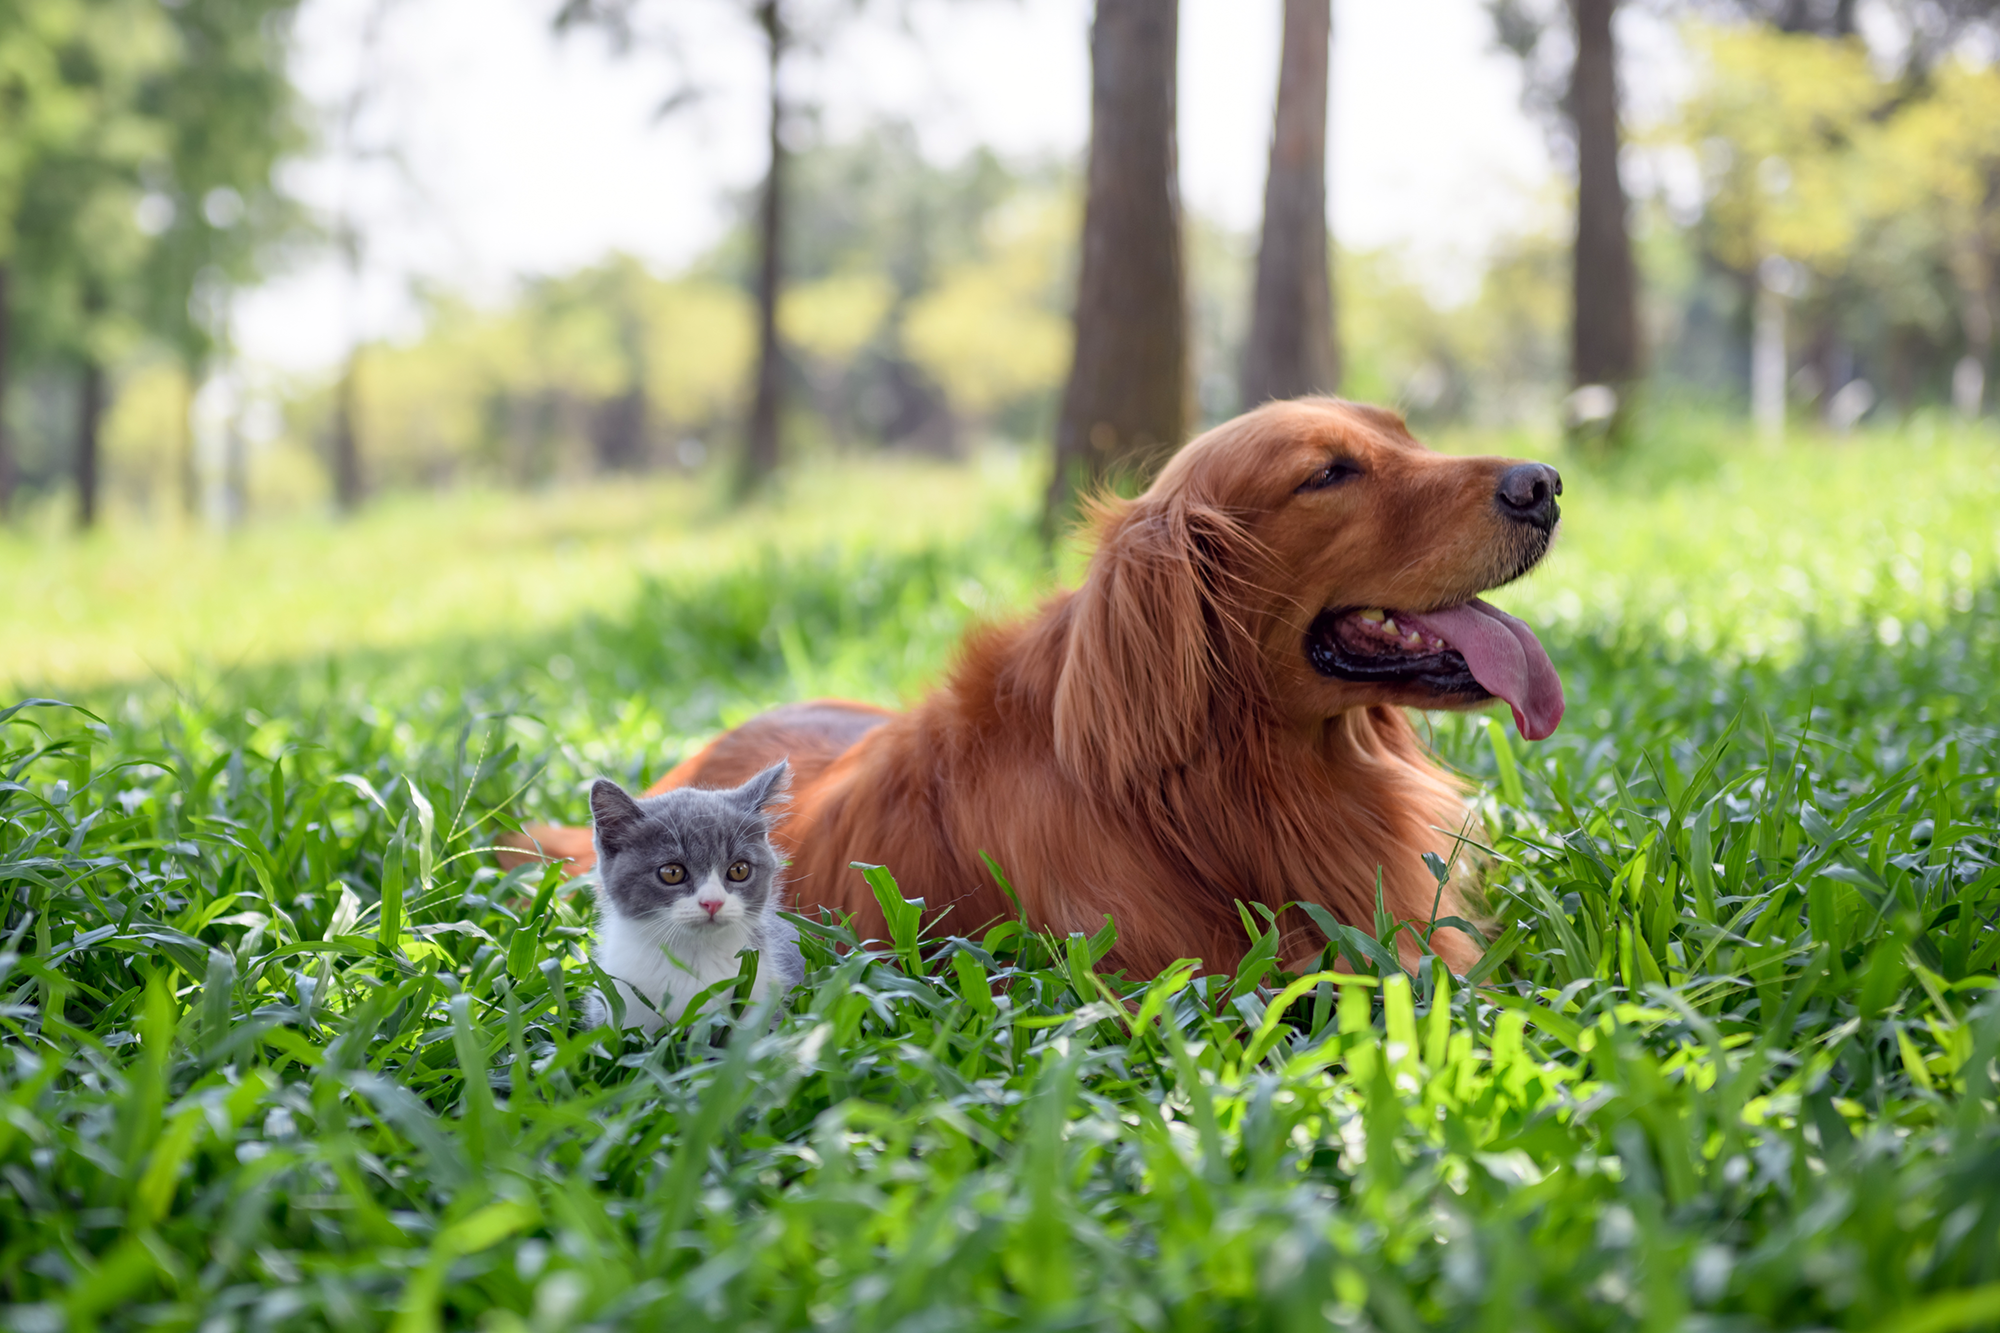 retriever dog and gray and white kitten sitting outside in the grass